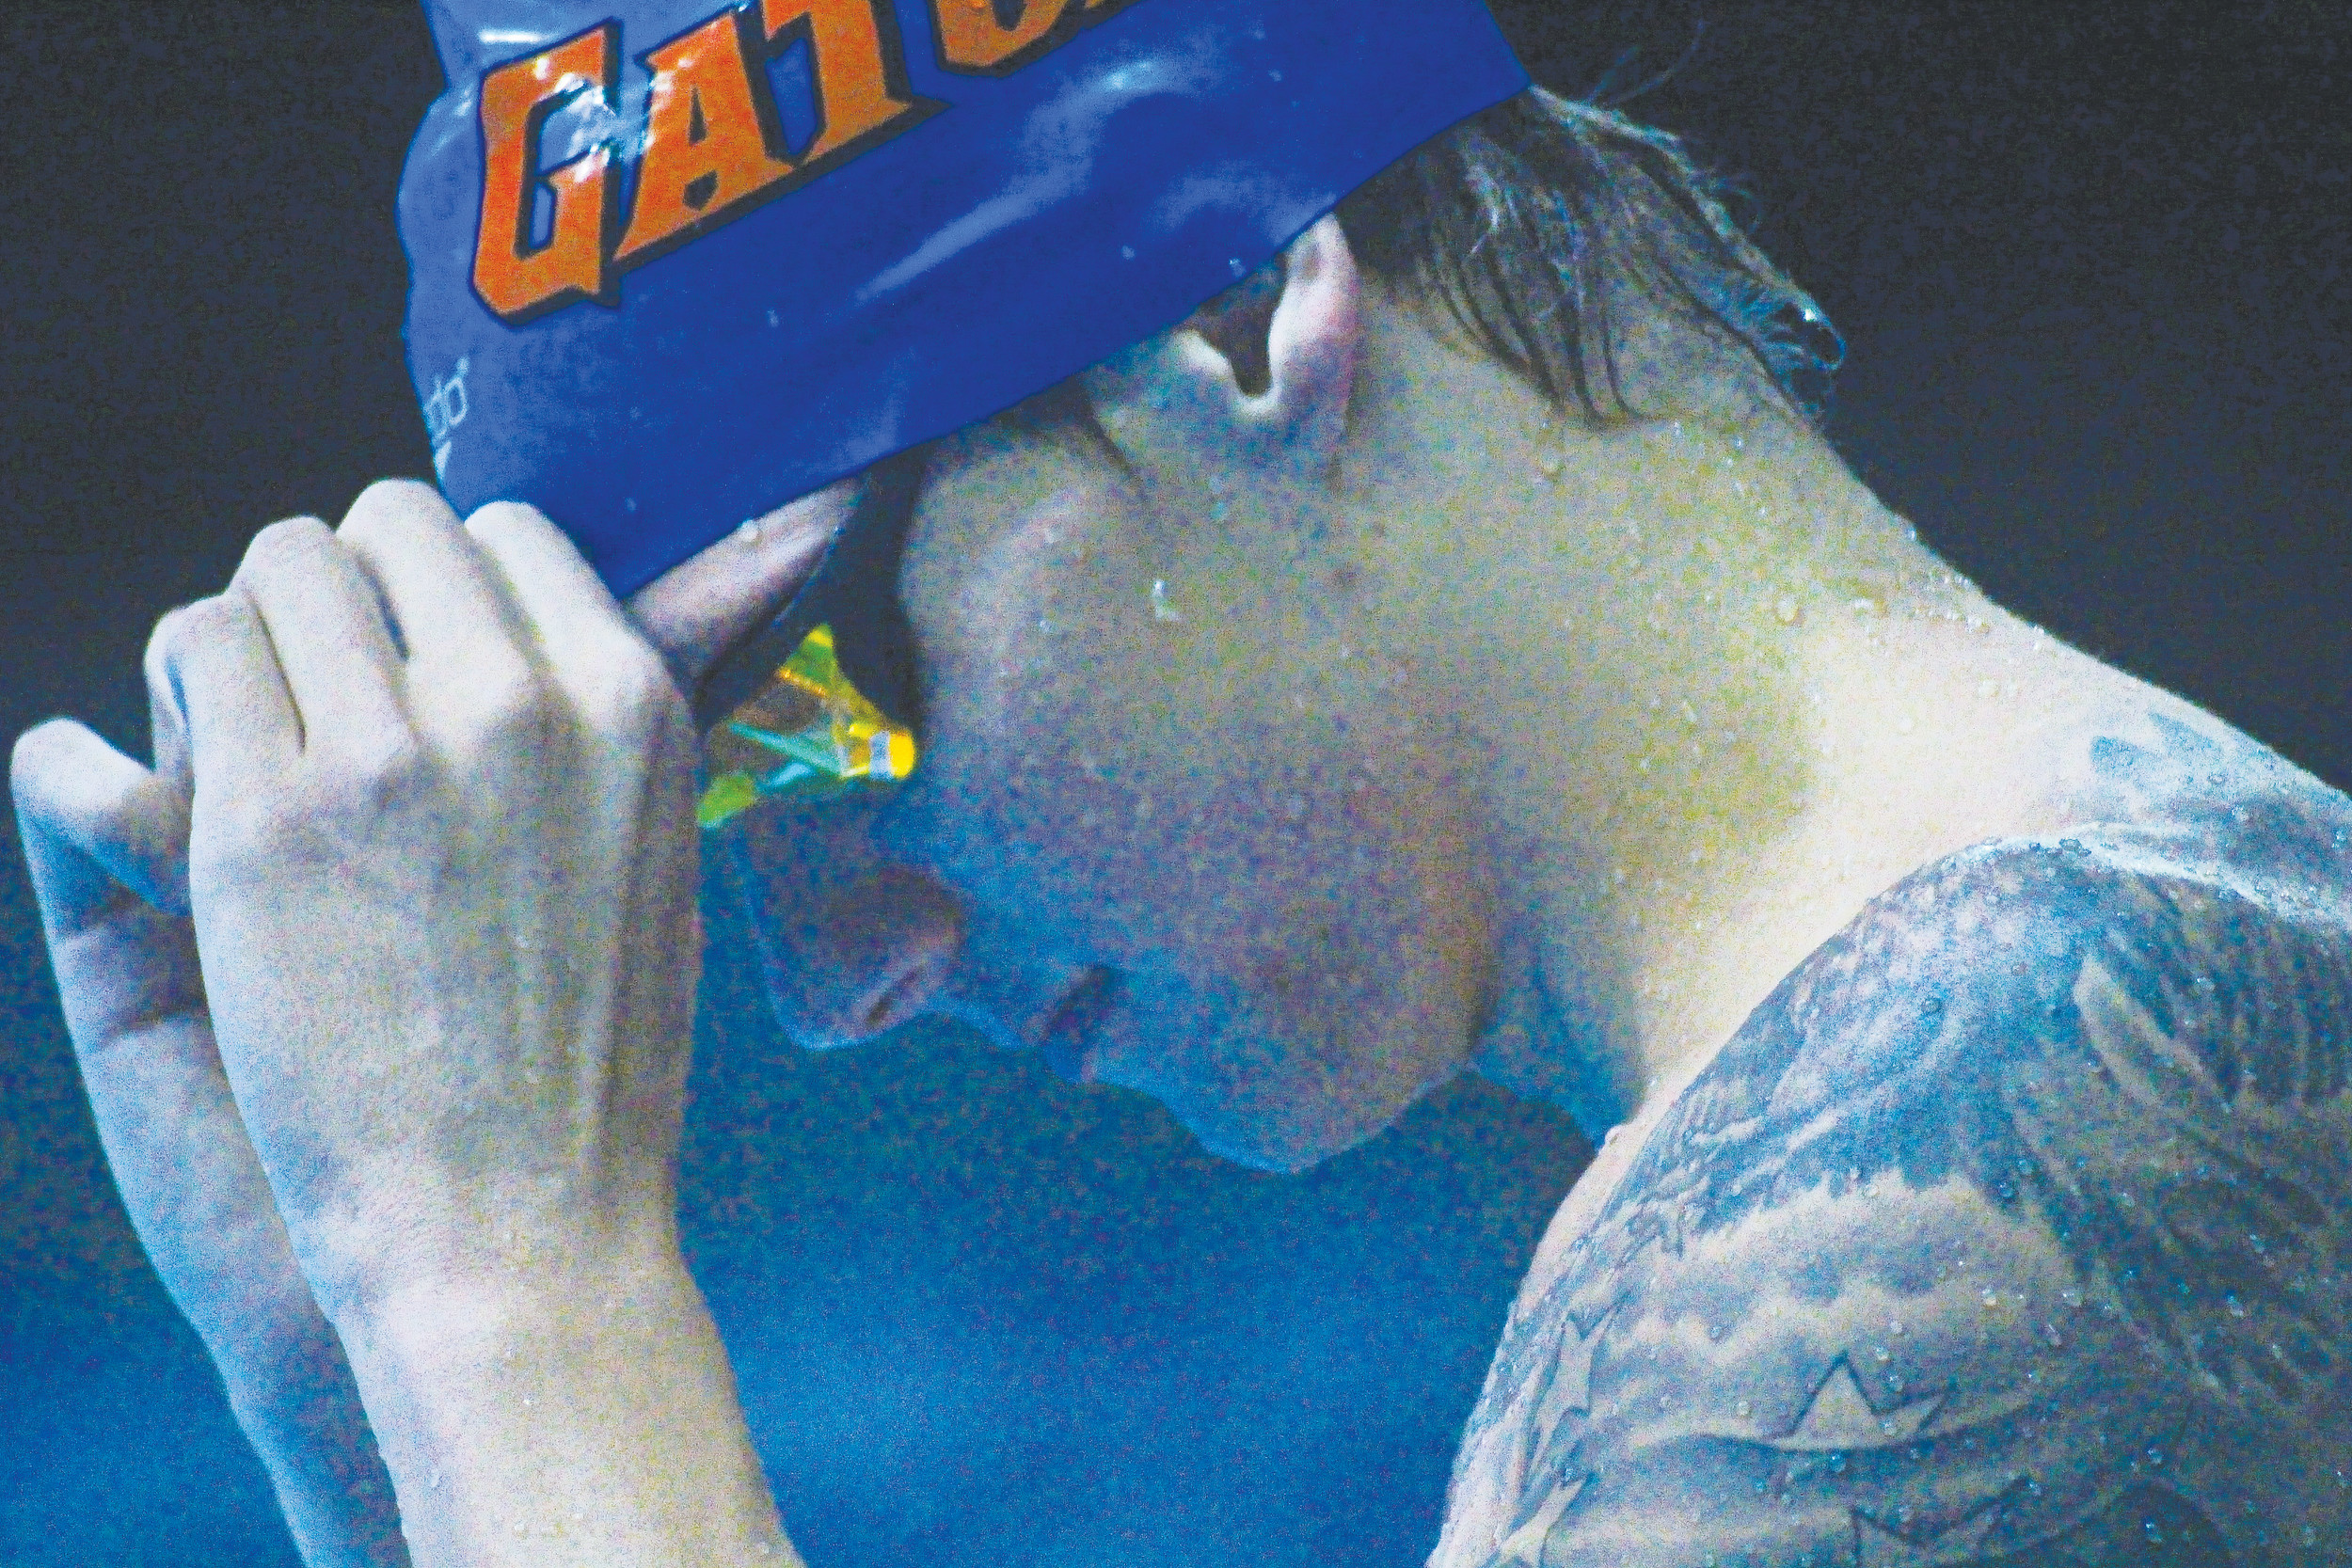 Clay High grad and University of Florida swimmer  Caeleb Dressel continued his swim exploits with three USA titles.